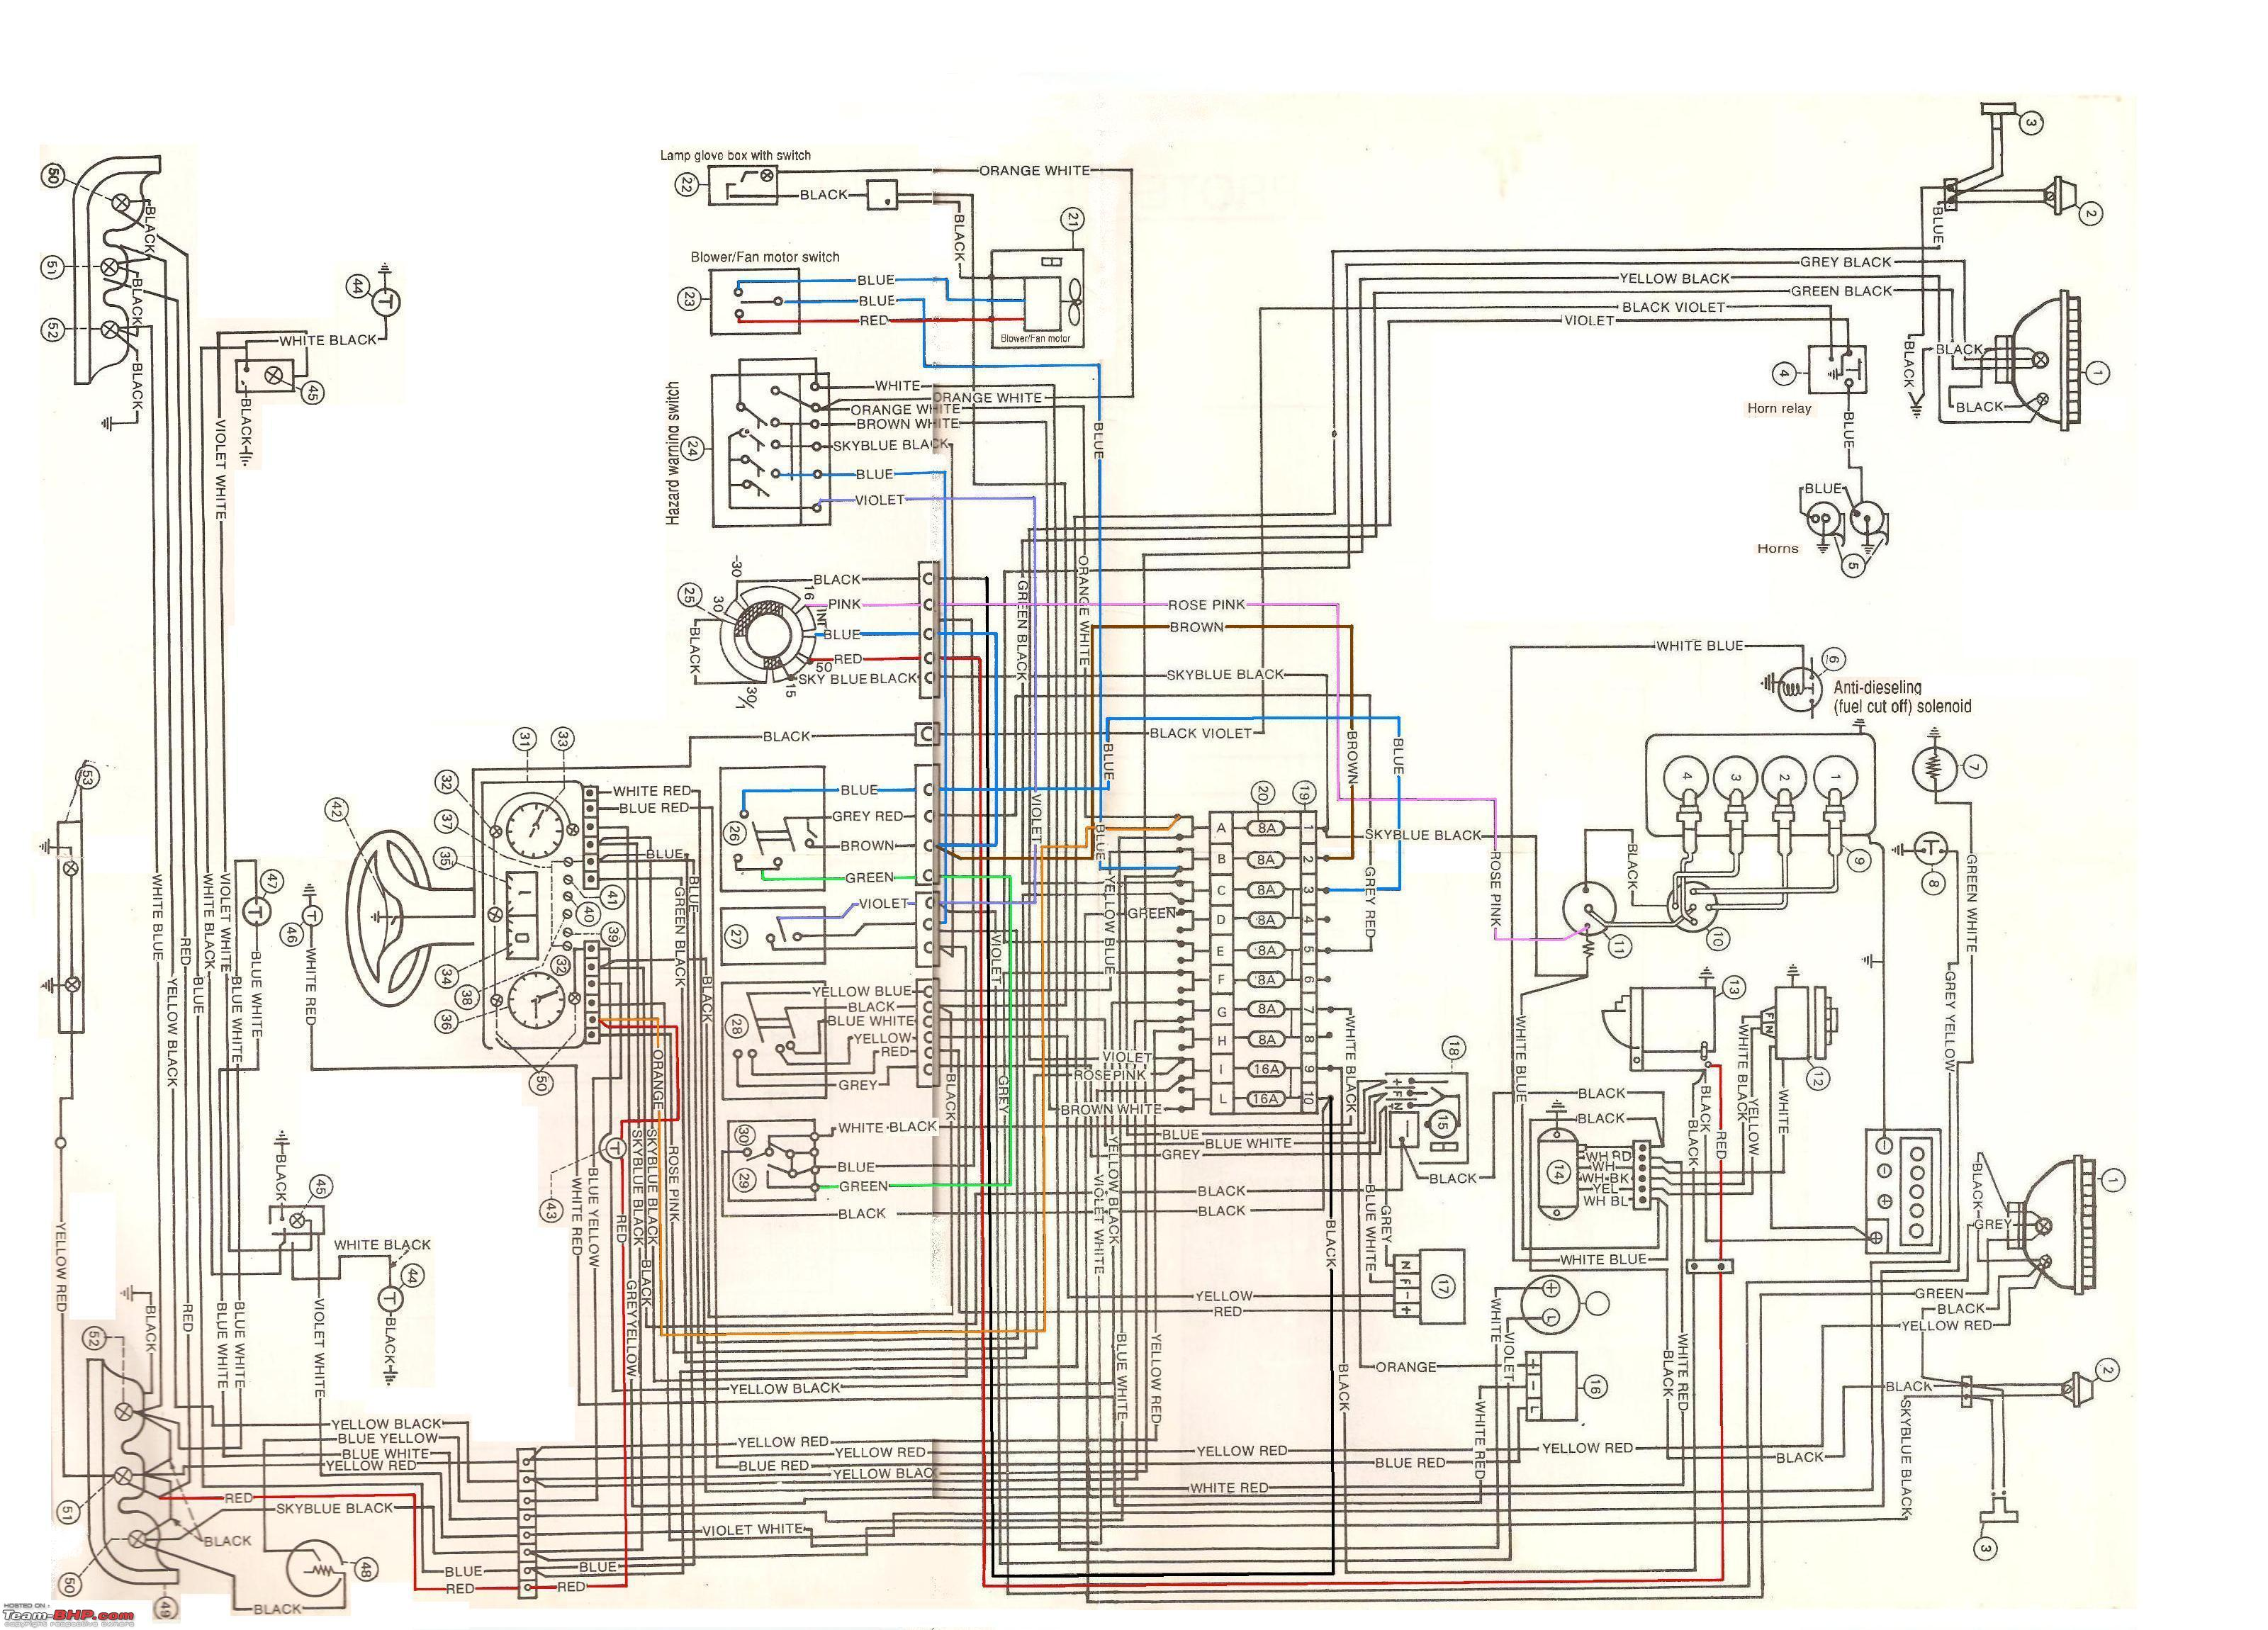 Watch furthermore Watch as well Refrigerator Repair 5 additionally Kenmore Model 110 Washing Machine Wiring Diagram together with Primo Water Dispenser Replacement Parts Wiring Diagrams. on haier wiring diagram